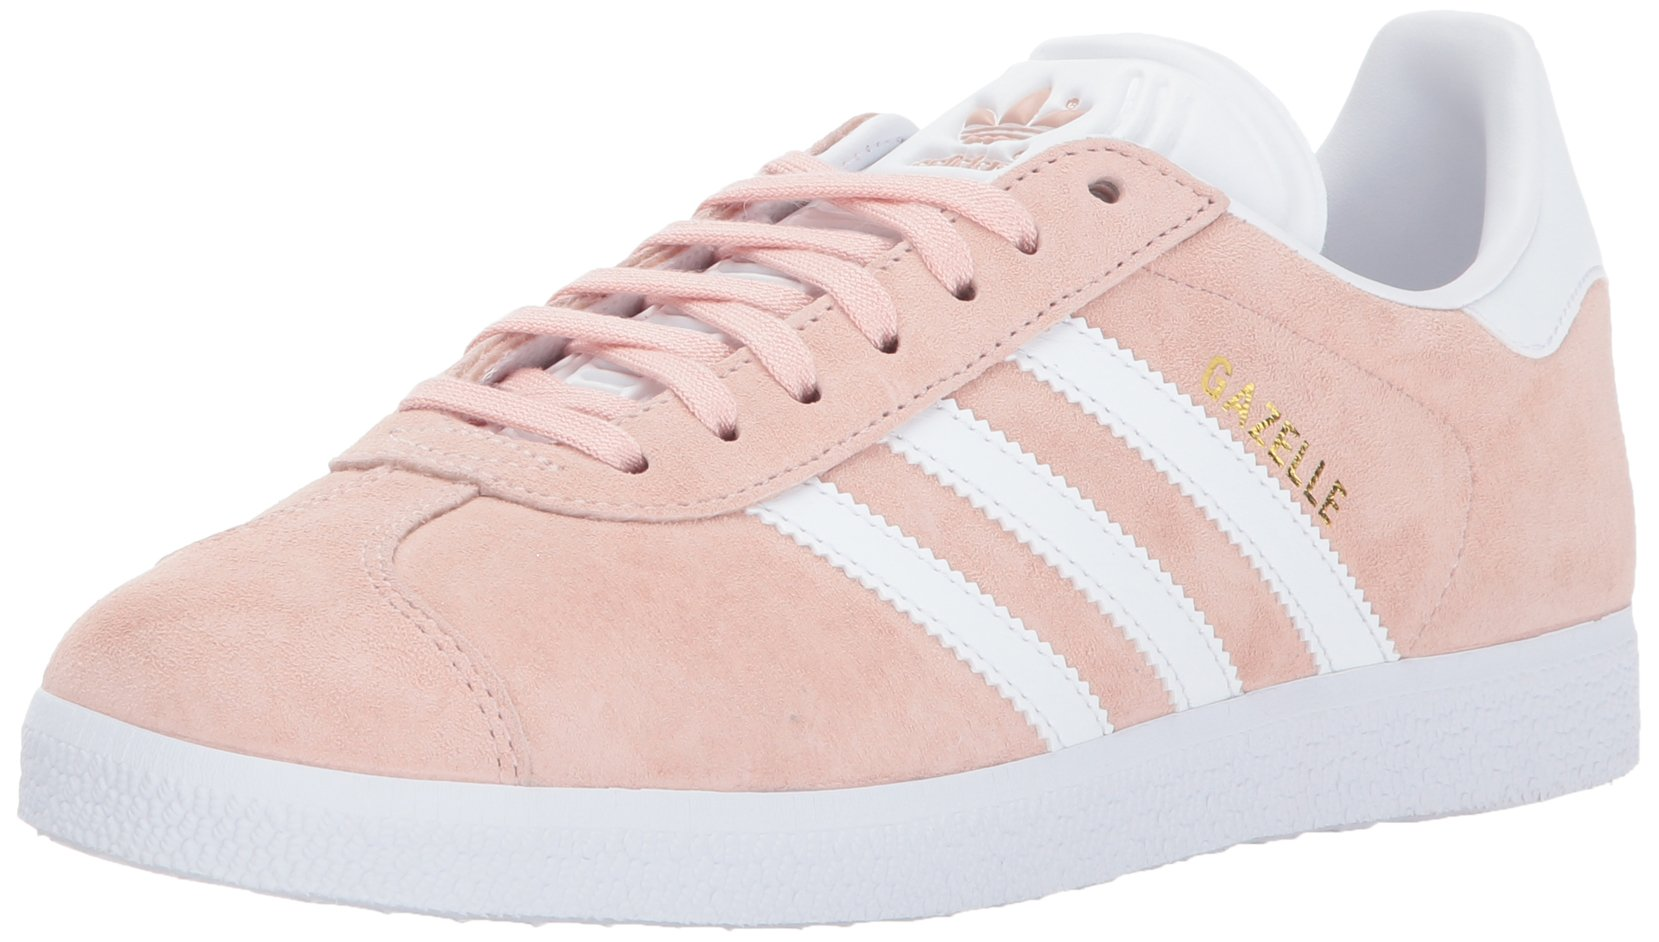 adidas Originals Women's Shoes | Gazelle Sneakers, Vapour Pink/White/Metallic Gold, (7 M US)